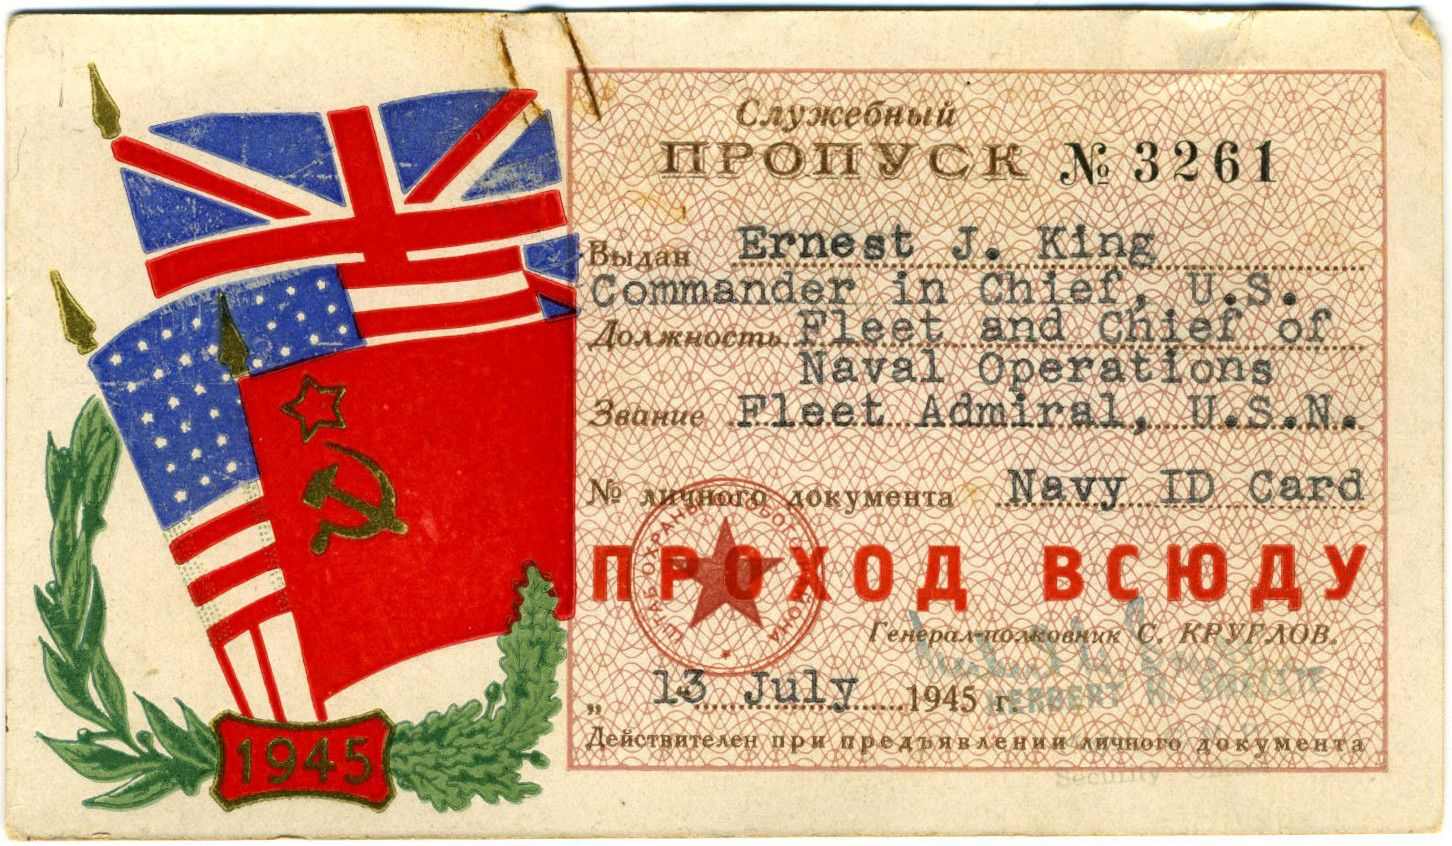 photo ernest king 39 s soviet issued identification card for use at the potsdam conference in. Black Bedroom Furniture Sets. Home Design Ideas